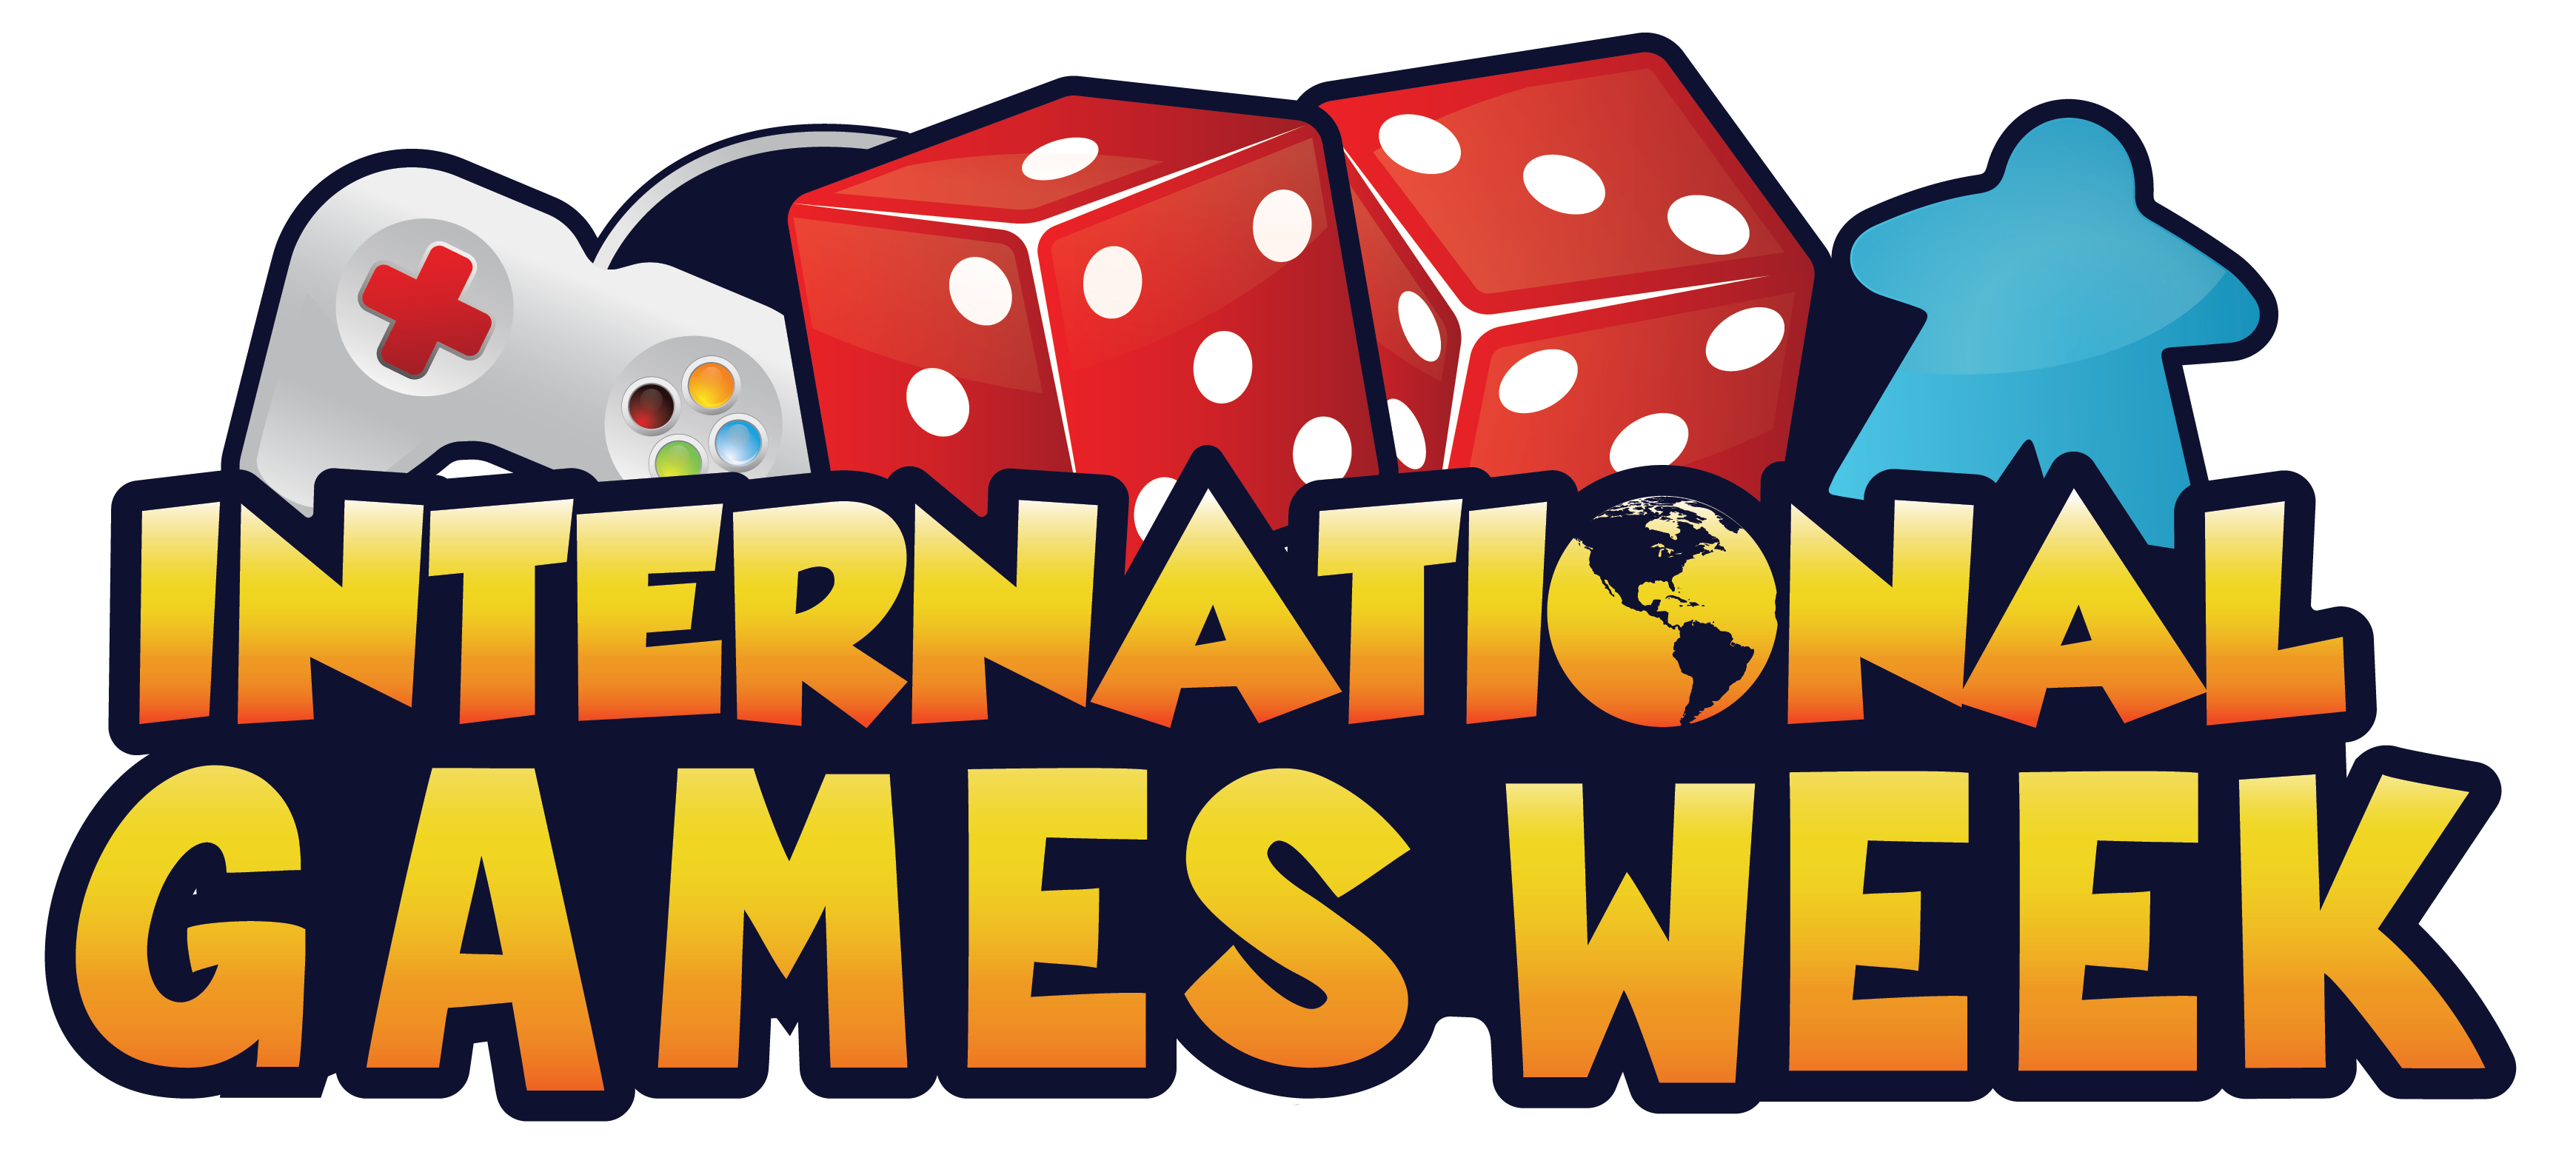 Get ready to celebrate. Gaming clipart tabletop game